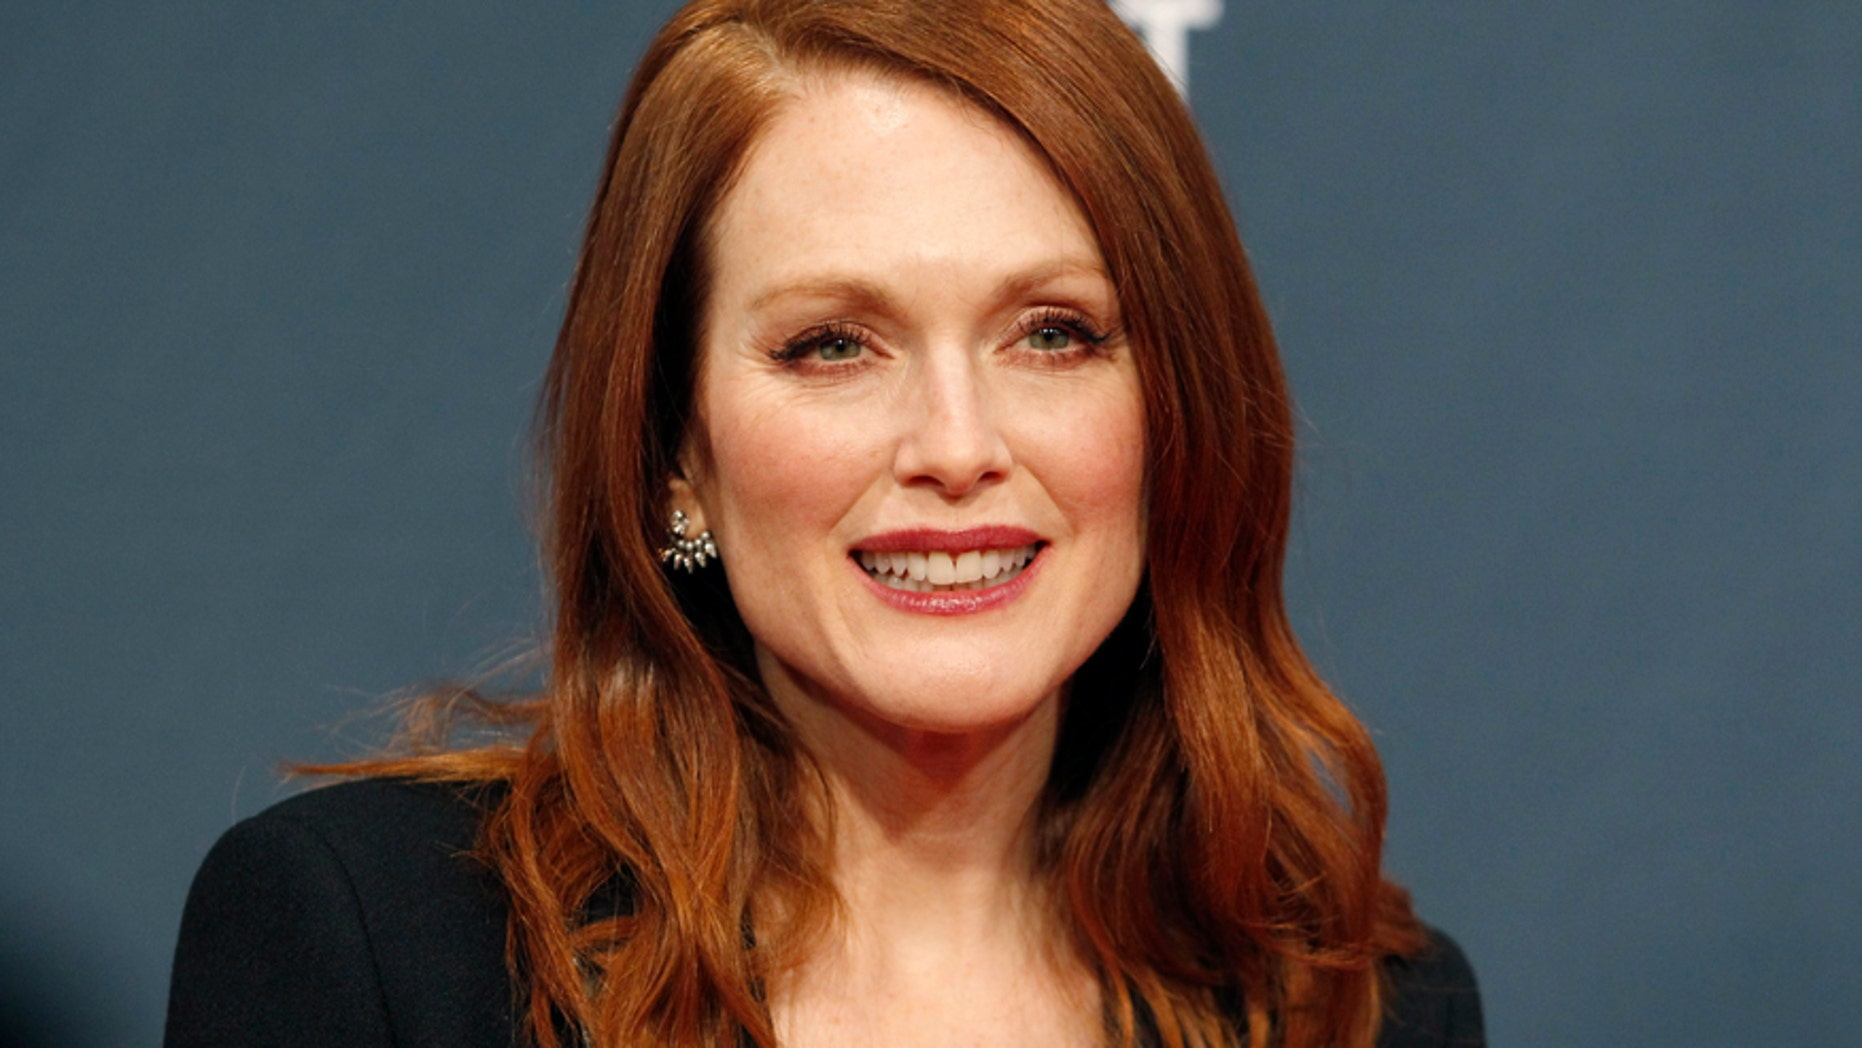 Actress Julianne Moore arrives at the 2015 Canadian Screen Awards in Toronto, March 1, 2015.